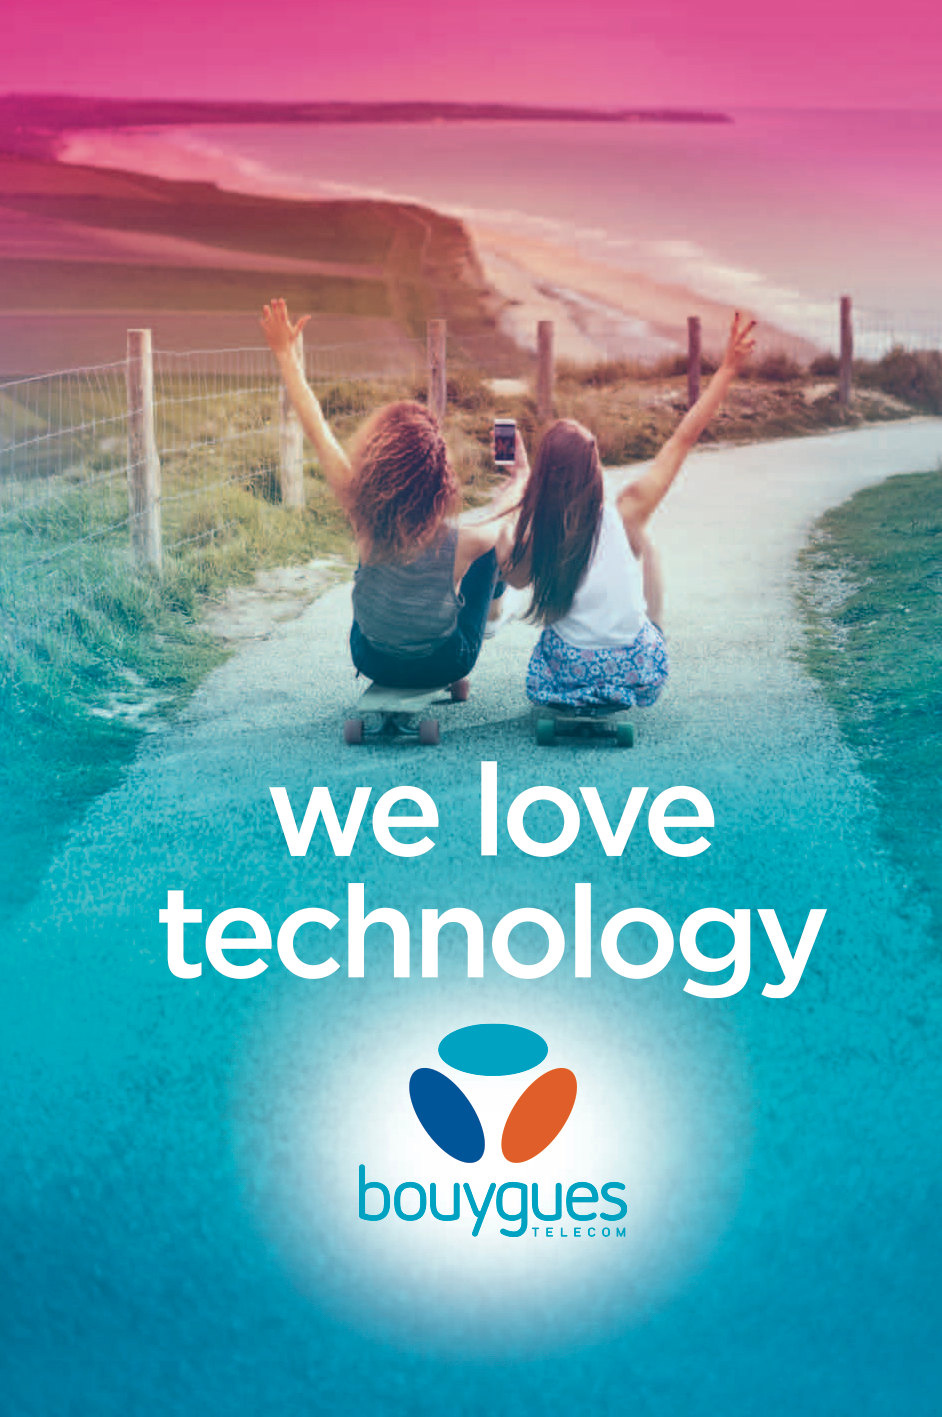 bouygues-we-love-technology